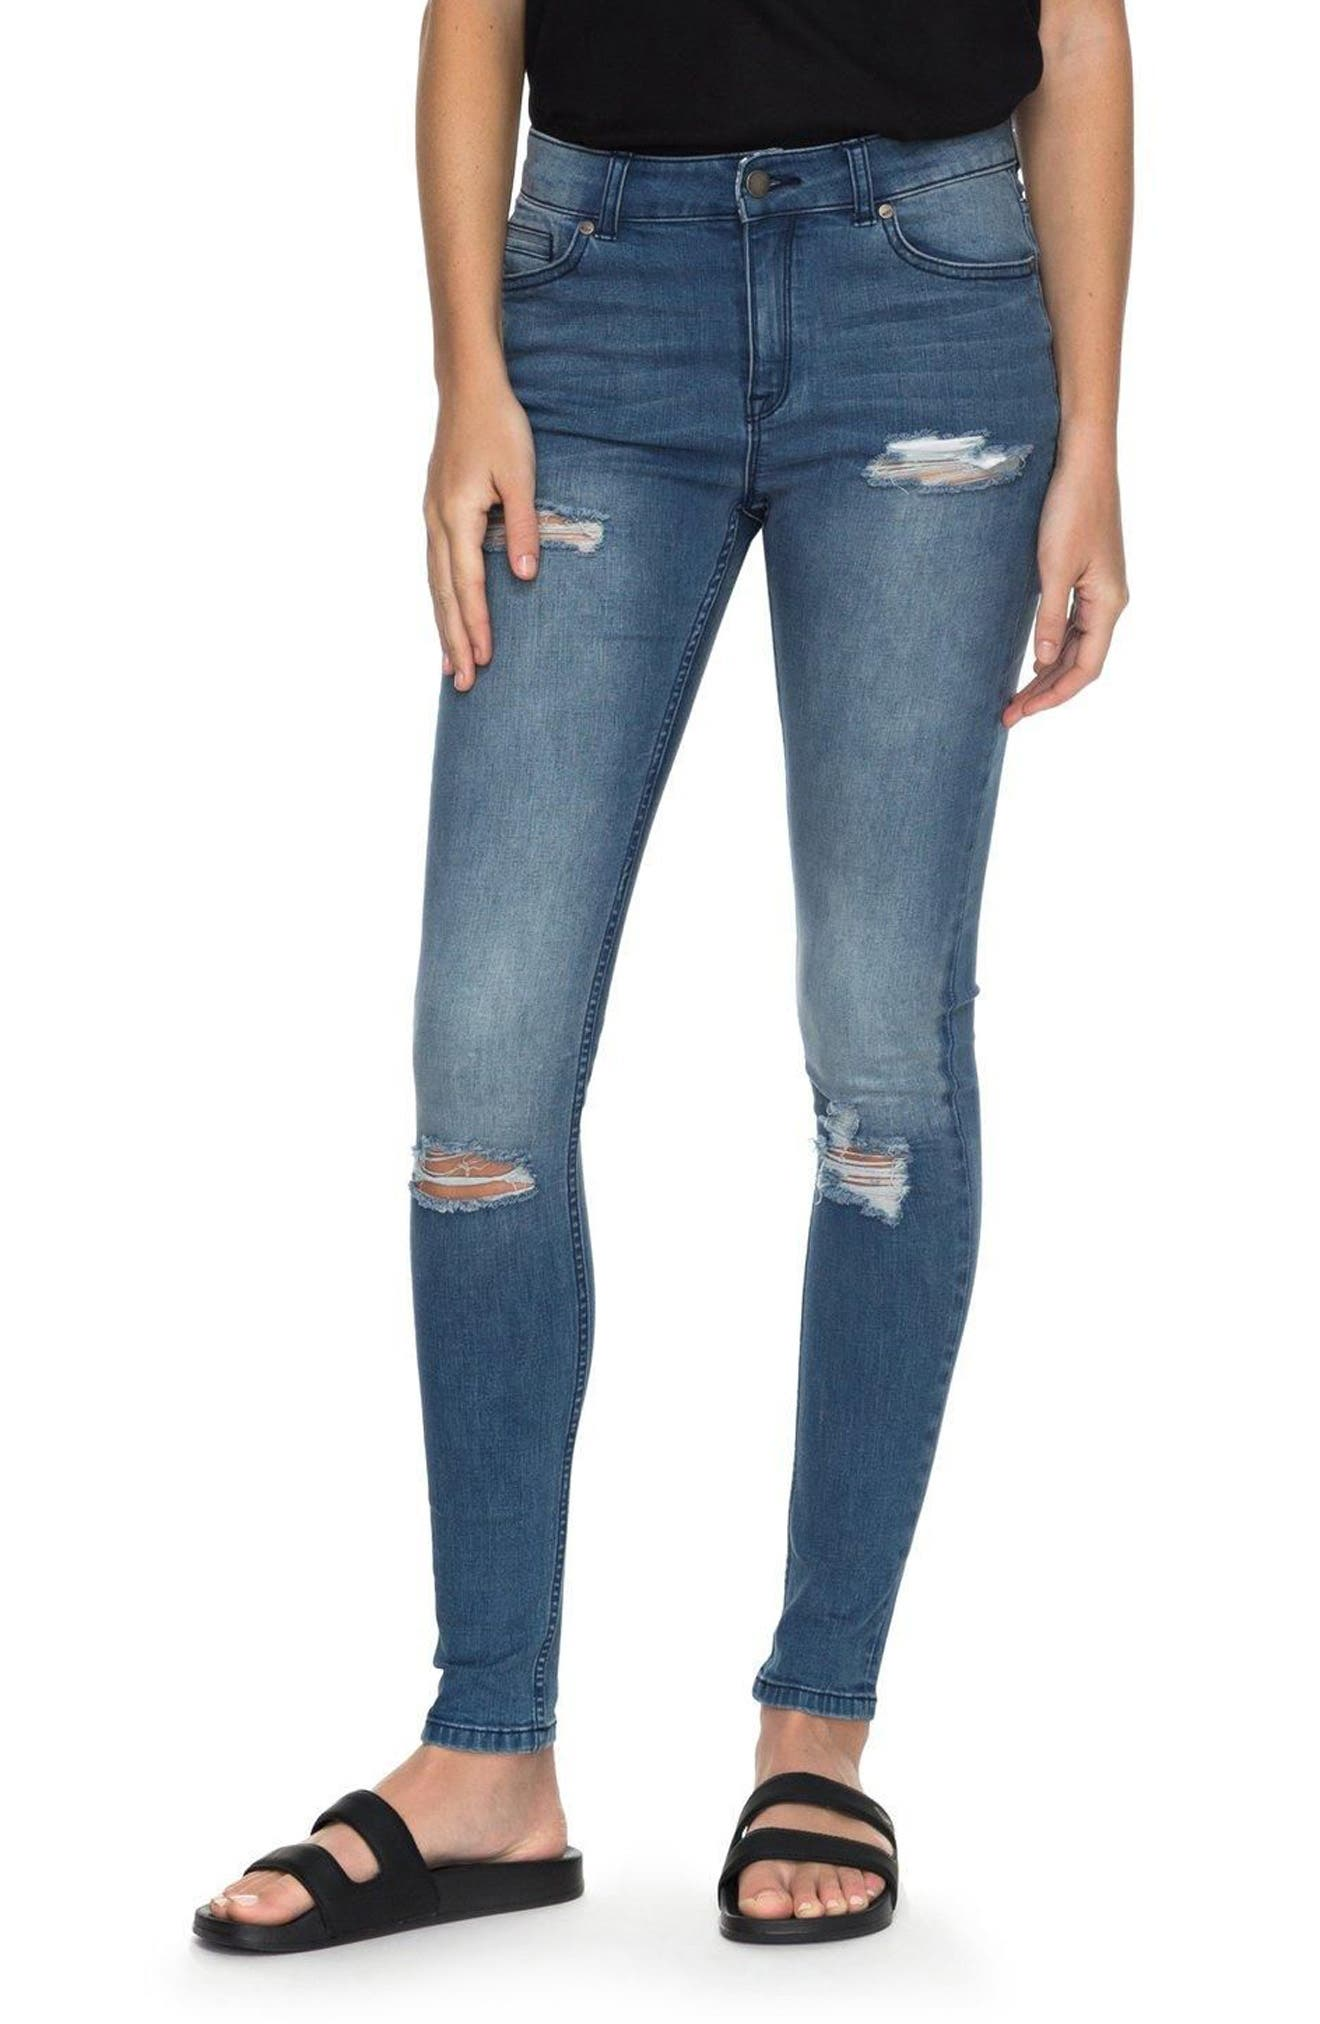 Main Image - Roxy Just the Good Day Distressed Skinny Jeans